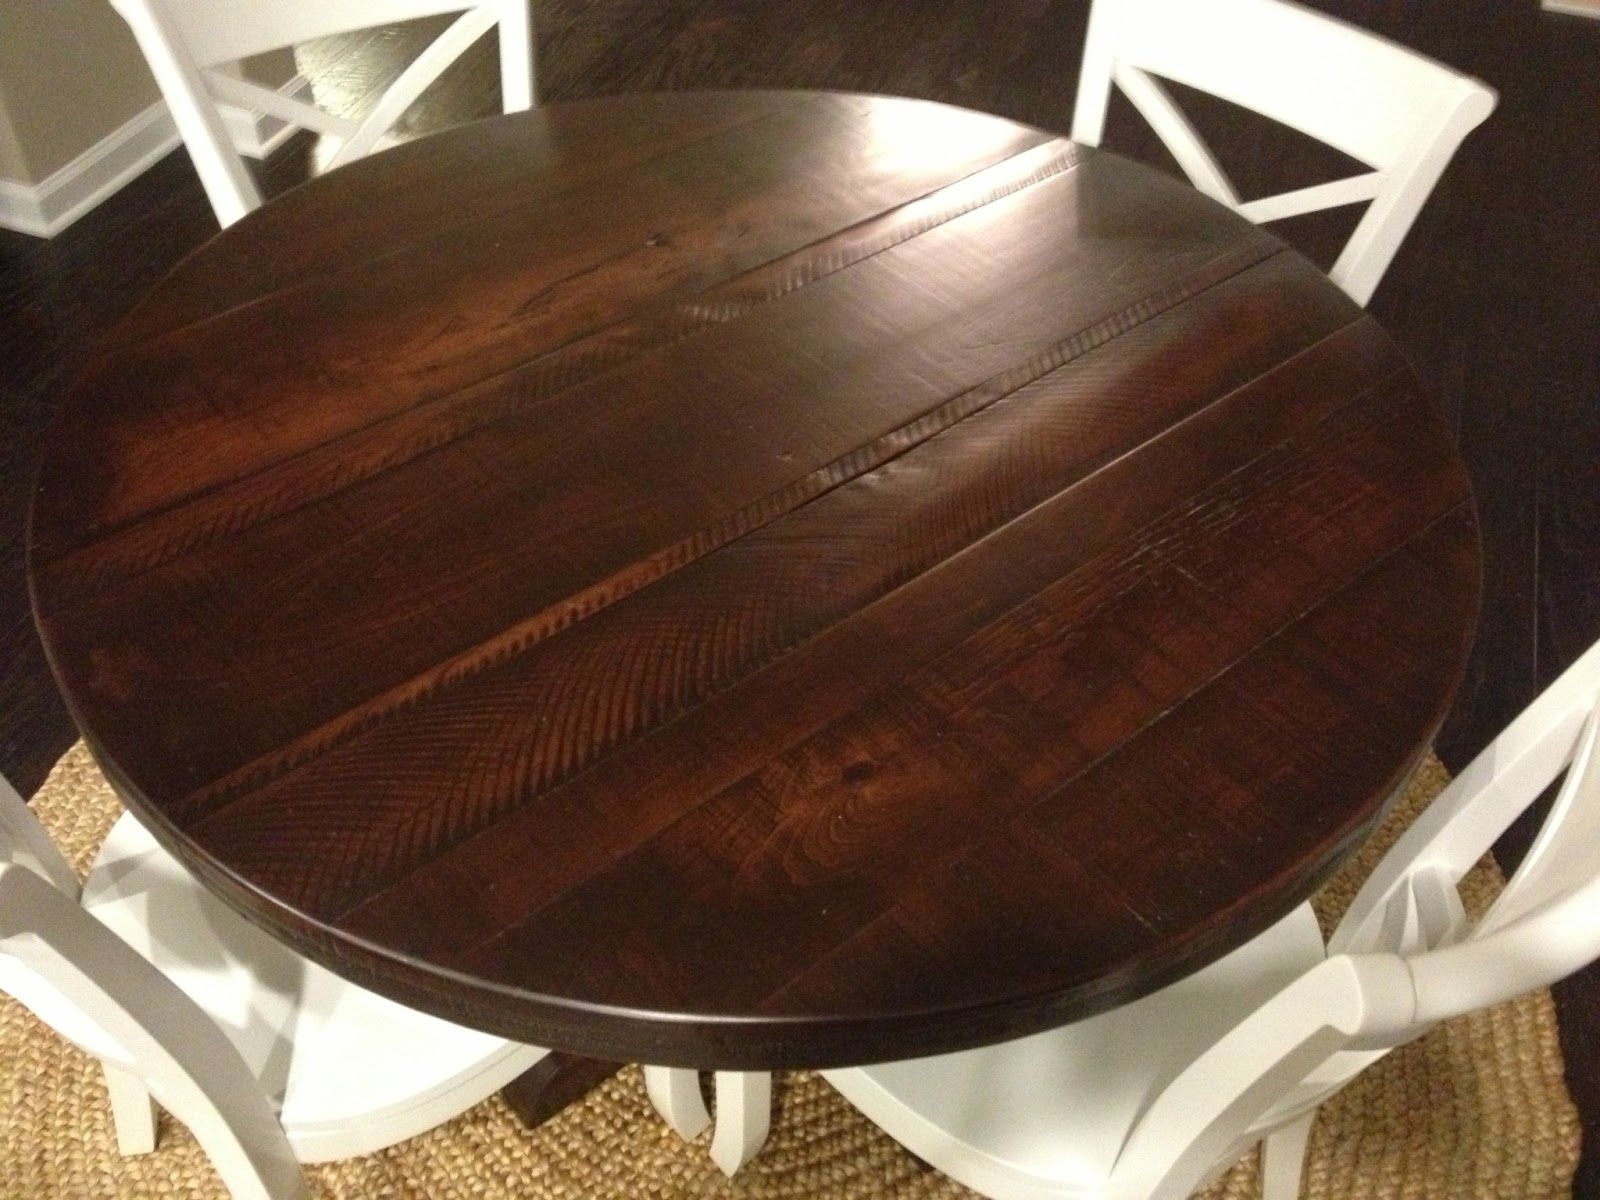 Appealing rustic round table design